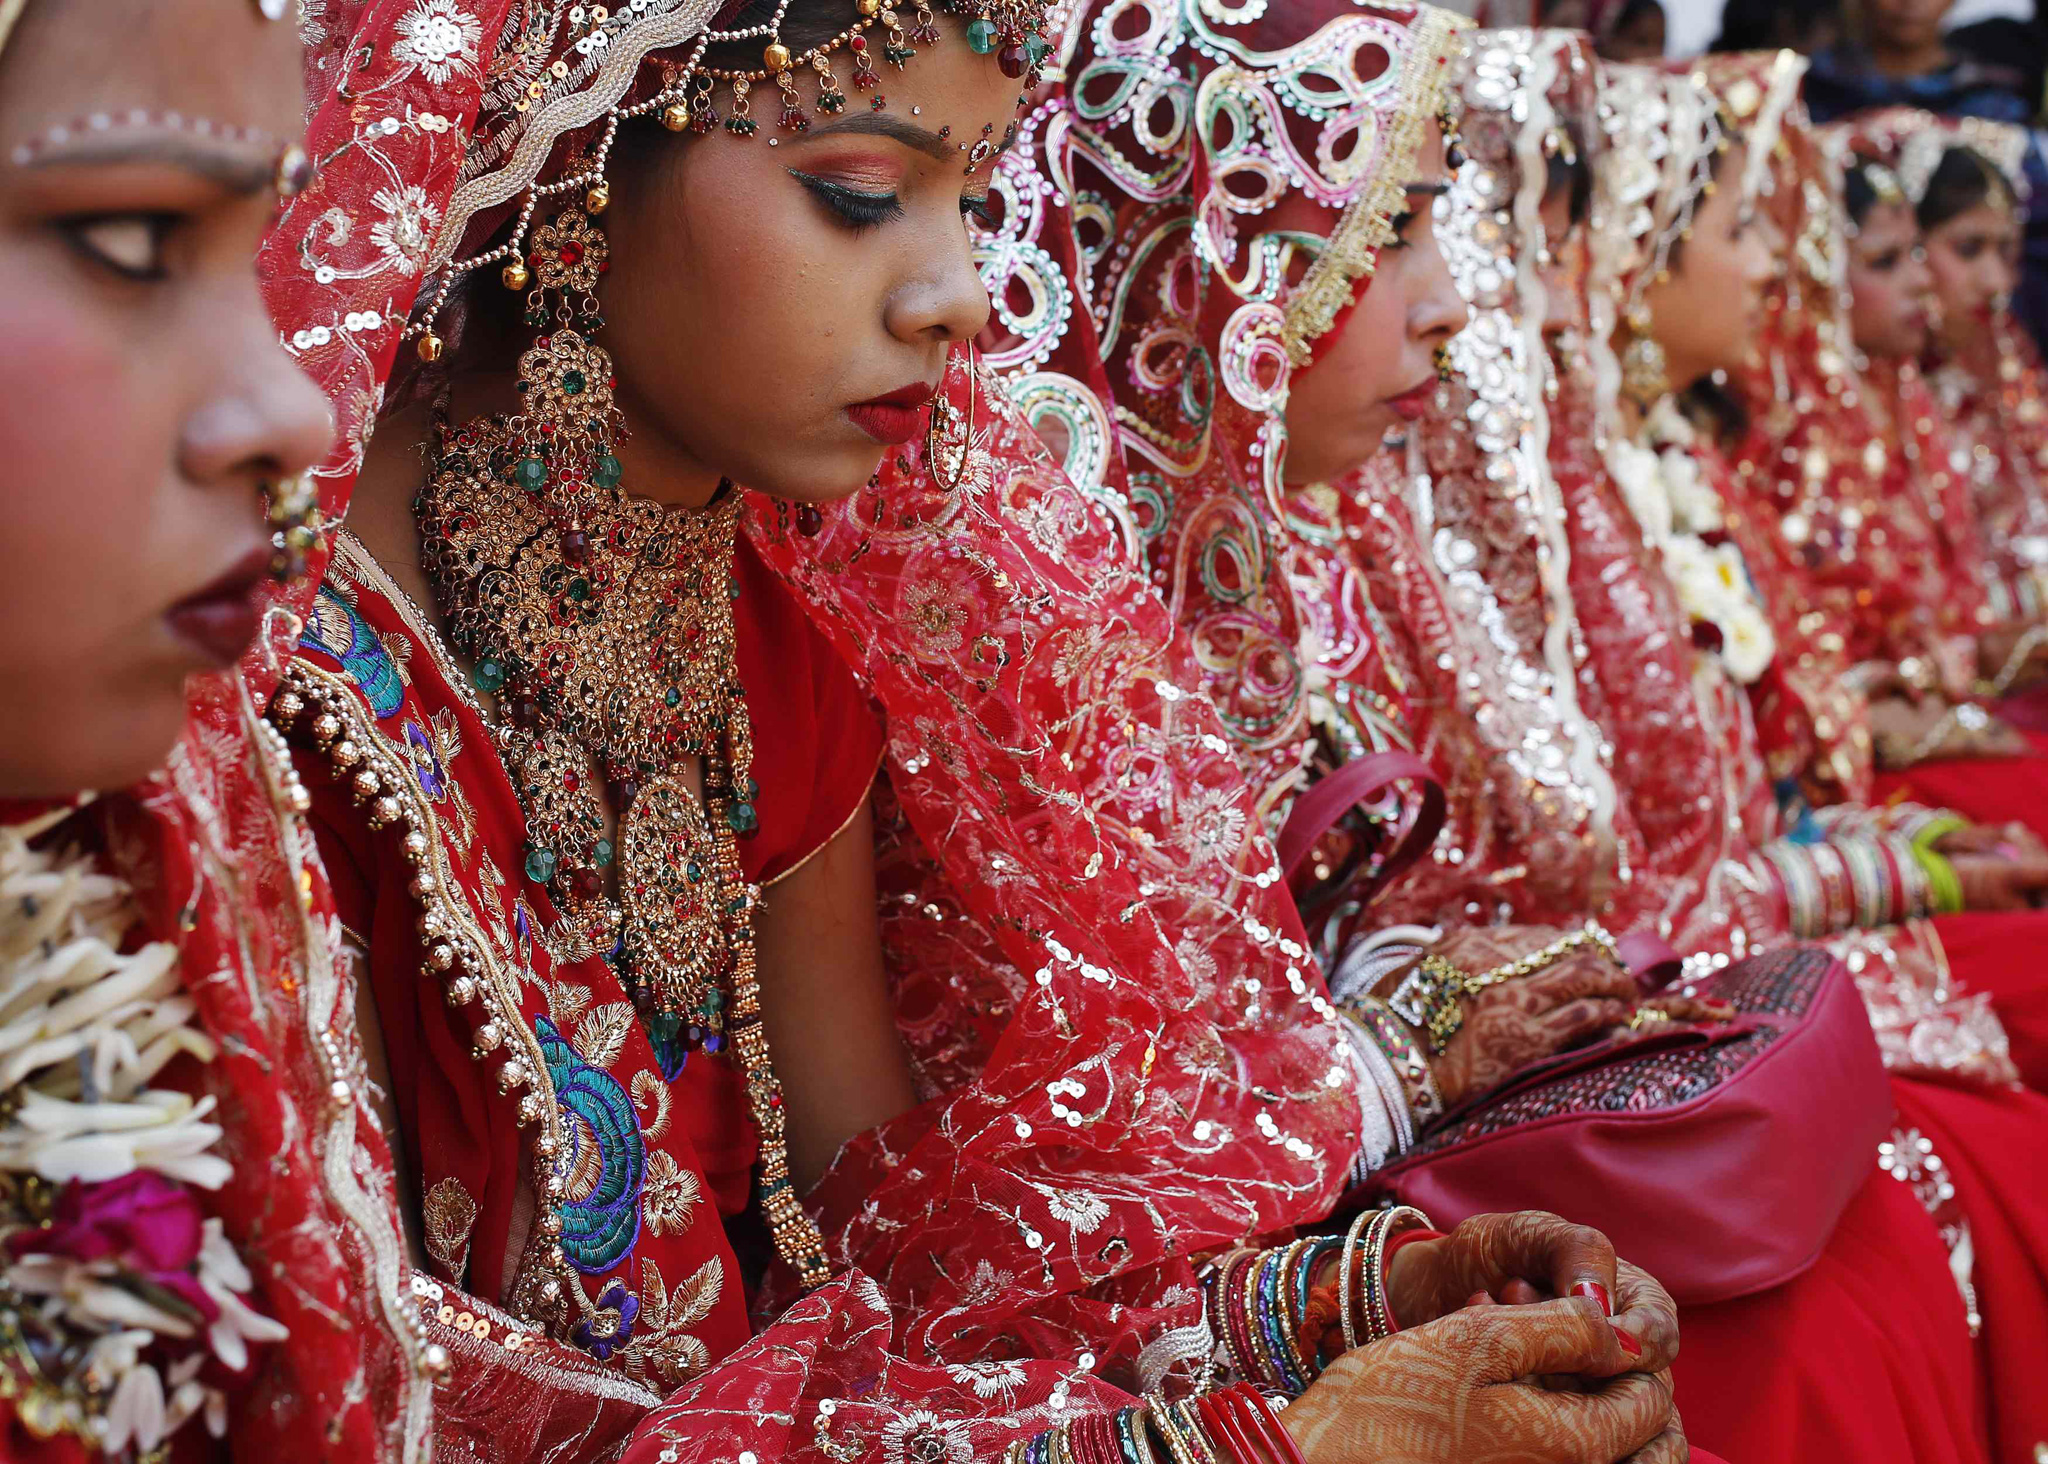 Brides sit as they wait to take their wedding vows during a mass wedding ceremony at a temple in New Delhi...Brides sit as they wait to take their wedding vows during a mass wedding ceremony at a temple in New Delhi March 3, 3014. A total of 11 couples exchanged wedding vows on Monday during the mass wedding ceremony arranged by a Hindu voluntary organisation, organisers said. REUTERS/Anindito Mukherjee